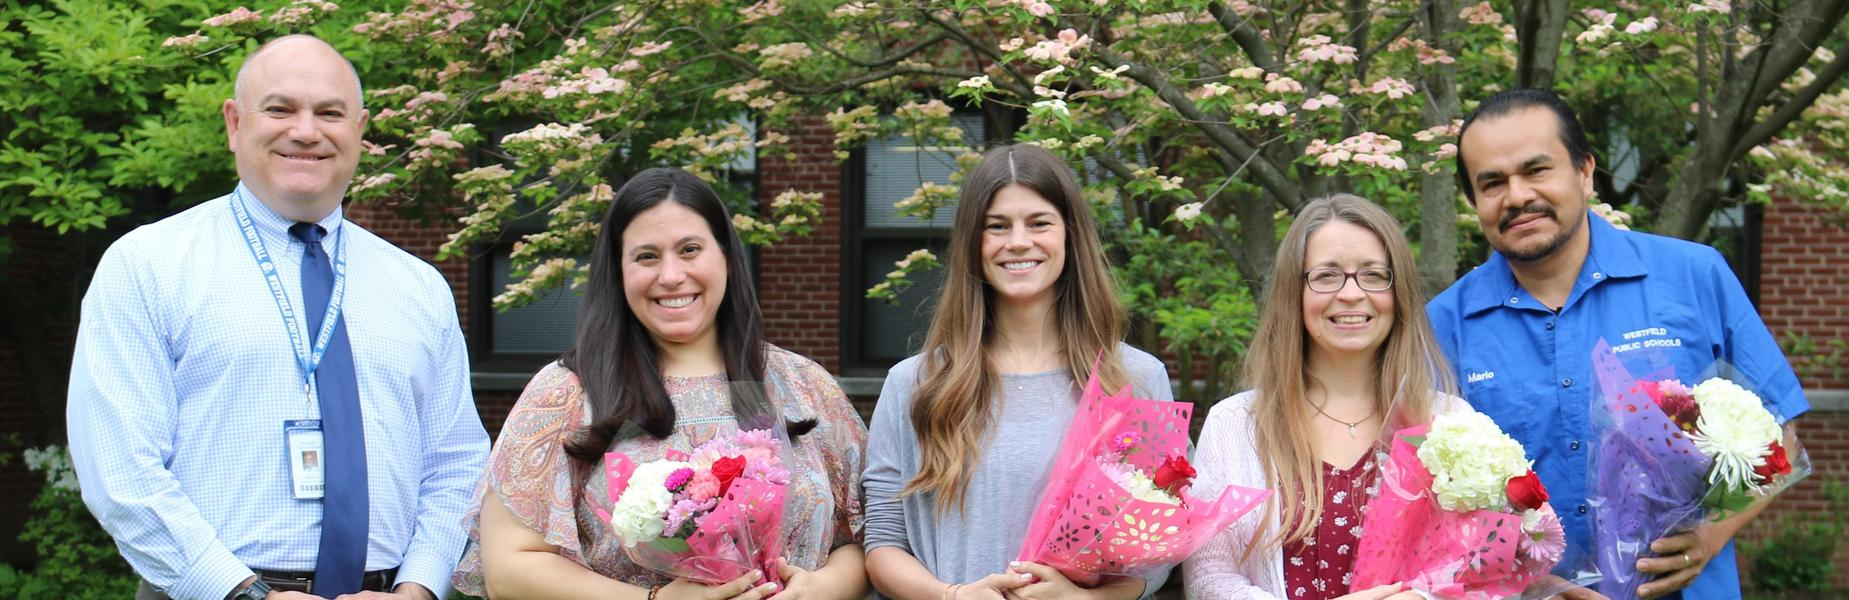 Photo of:  :  (From left) Westfield High School interim principal James DeSarno congratulates special education teacher Lara Rinaldi, English/Project '79 teacher Erin McKeon, English teacher Aimee Burgoyne-Black, and custodian Mario Arana who are this year's recipients of excellence awards for going above and beyond their responsibilities each day.   The four will be recognized by the Westfield Board of Education on Tuesday, June 11 at 7 p.m. at 302 Elm Street.